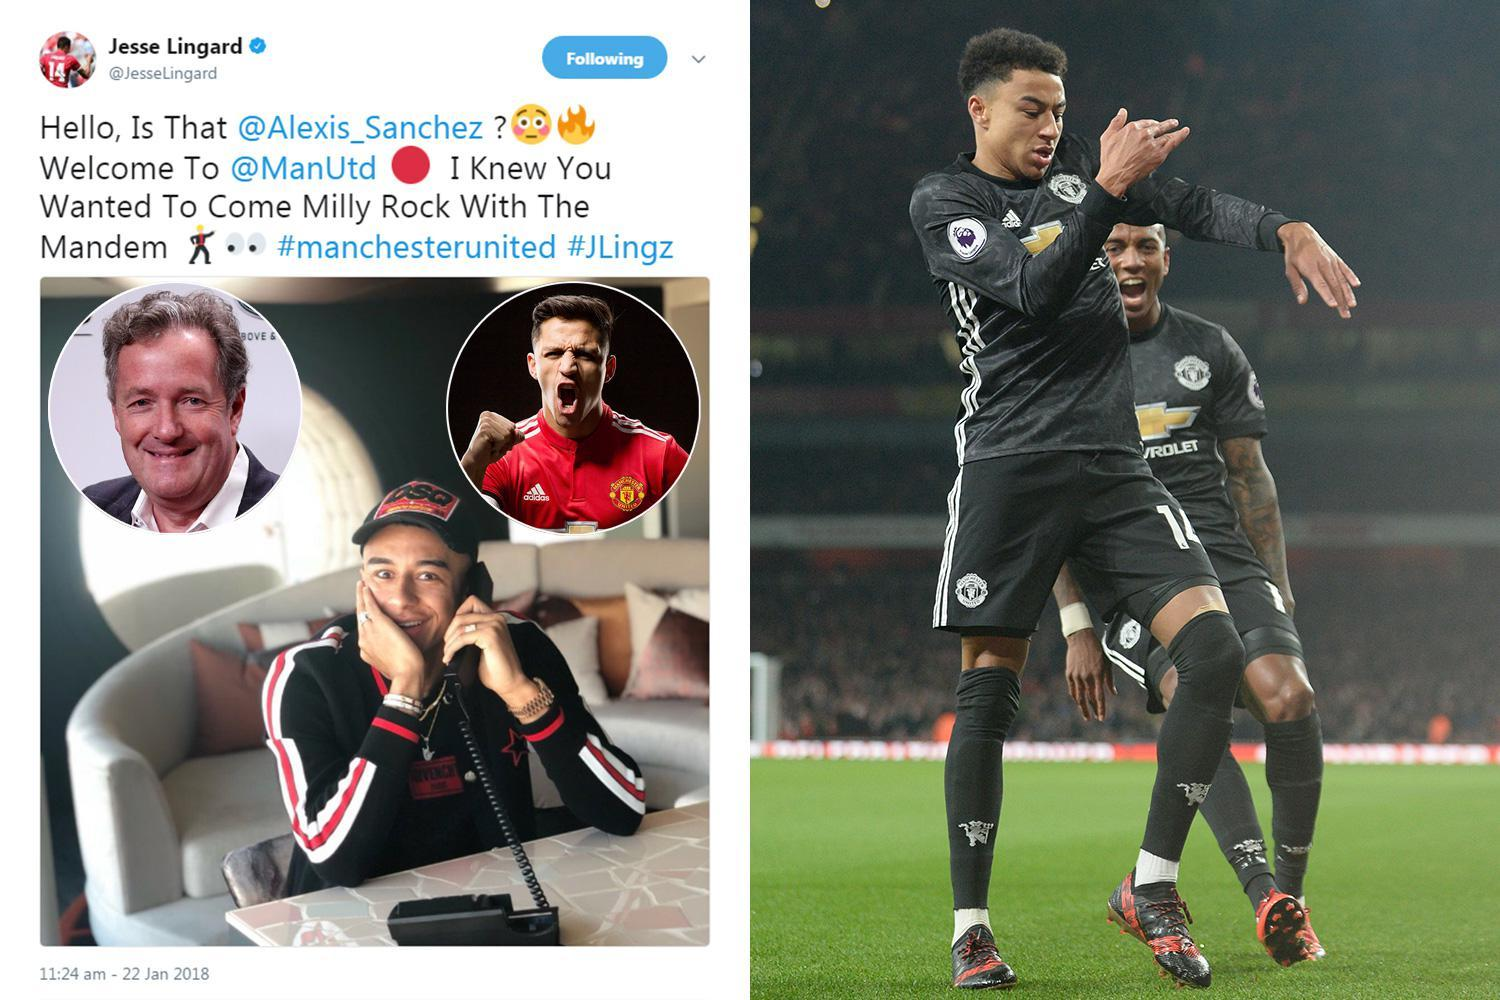 Jesse Lingard and Piers Morgan in Twitter war over Alexis Sanchez move to Manchester United